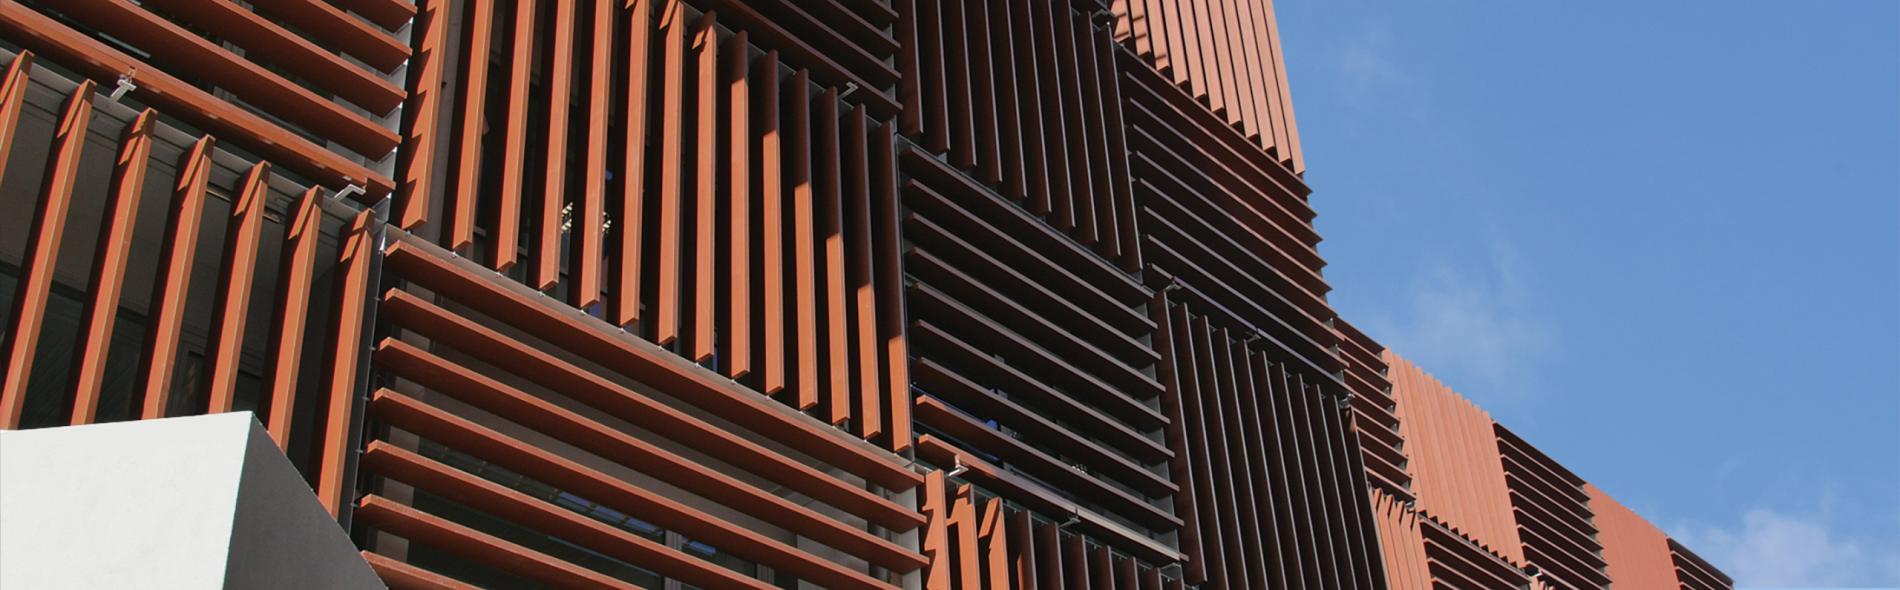 Architectural Building Skin - Kinetic Solar Shading System